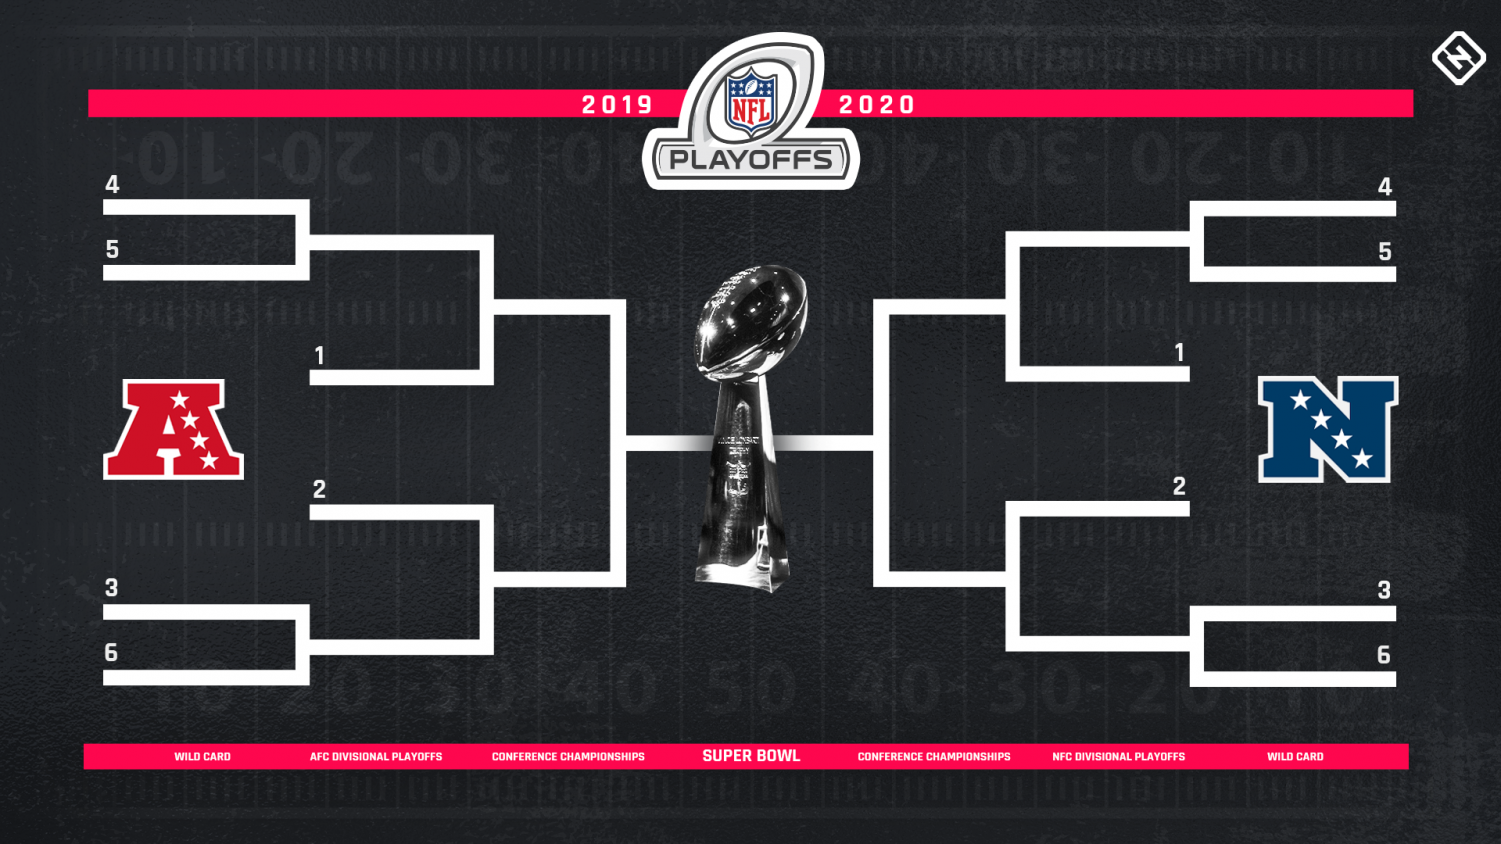 The Playoff bracket for the NFL. It will be filled with teams in the coming week as the league prepares for the playoffs.